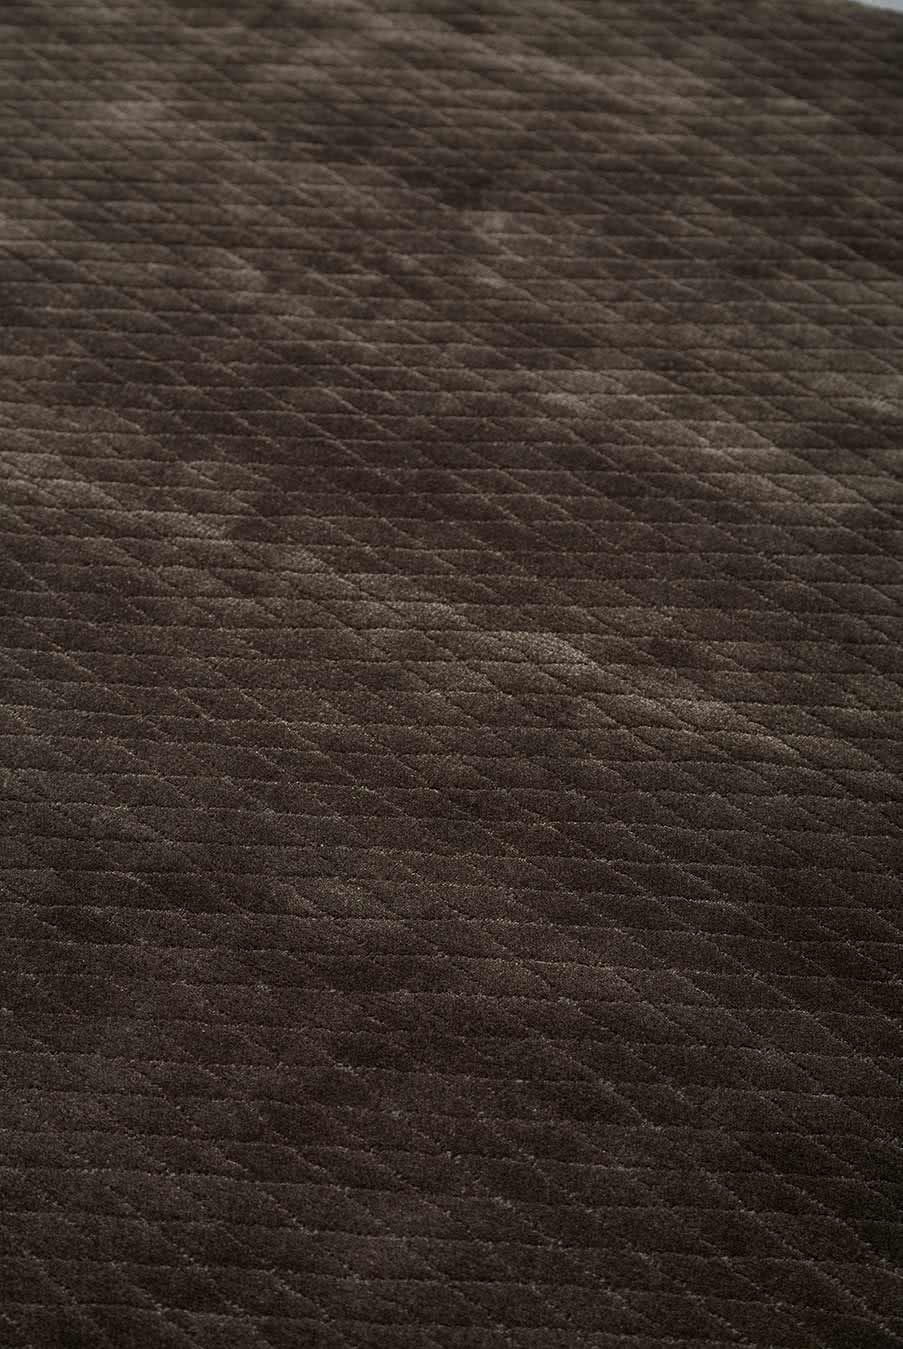 Close up view of textured Diamond Velour rug in dark brown colour